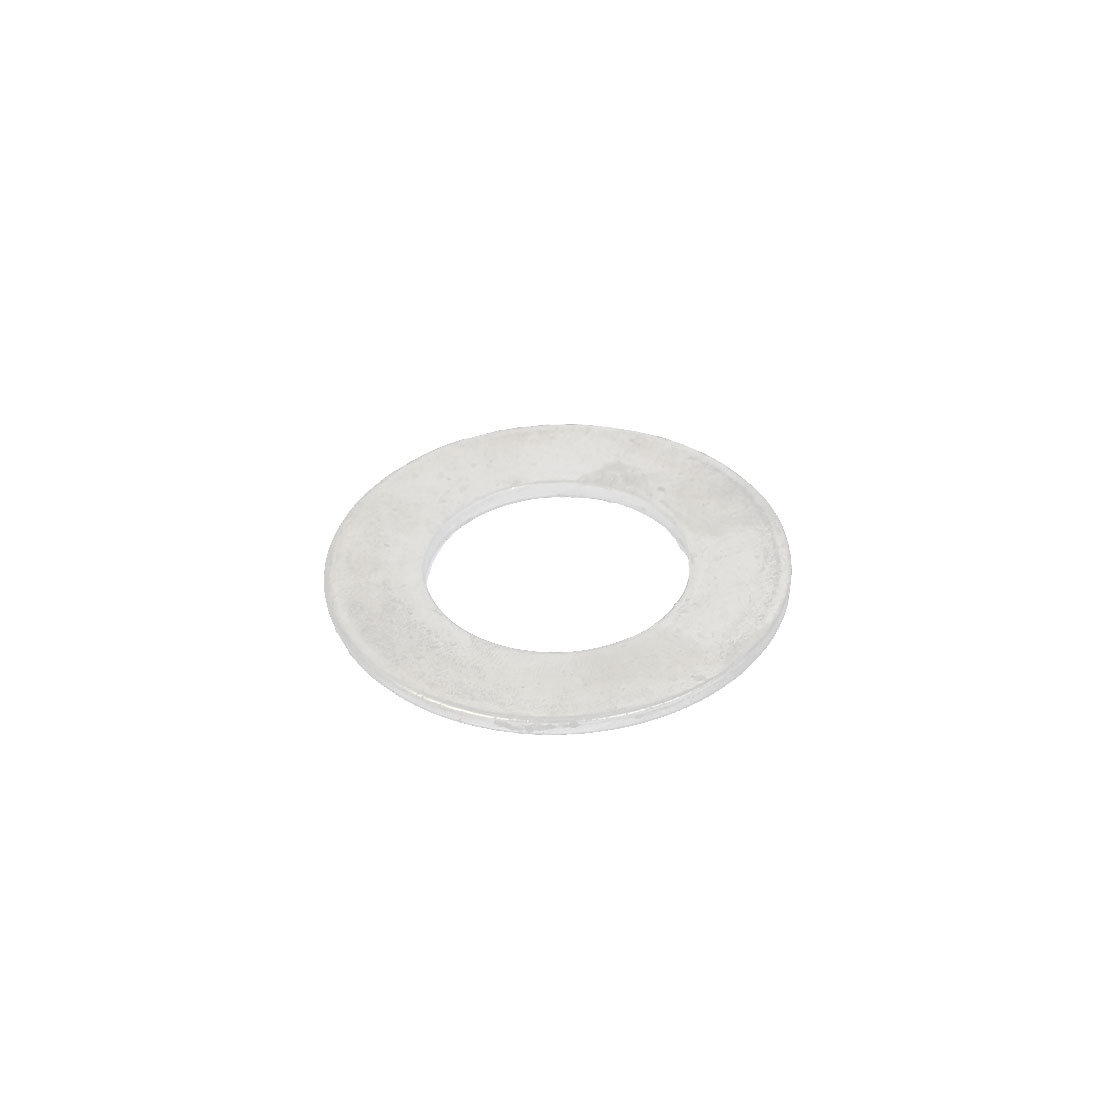 36mm x 64mm x 3.5mm Zinc Plated Flat Spacer Washer Gasket Fastener GB97